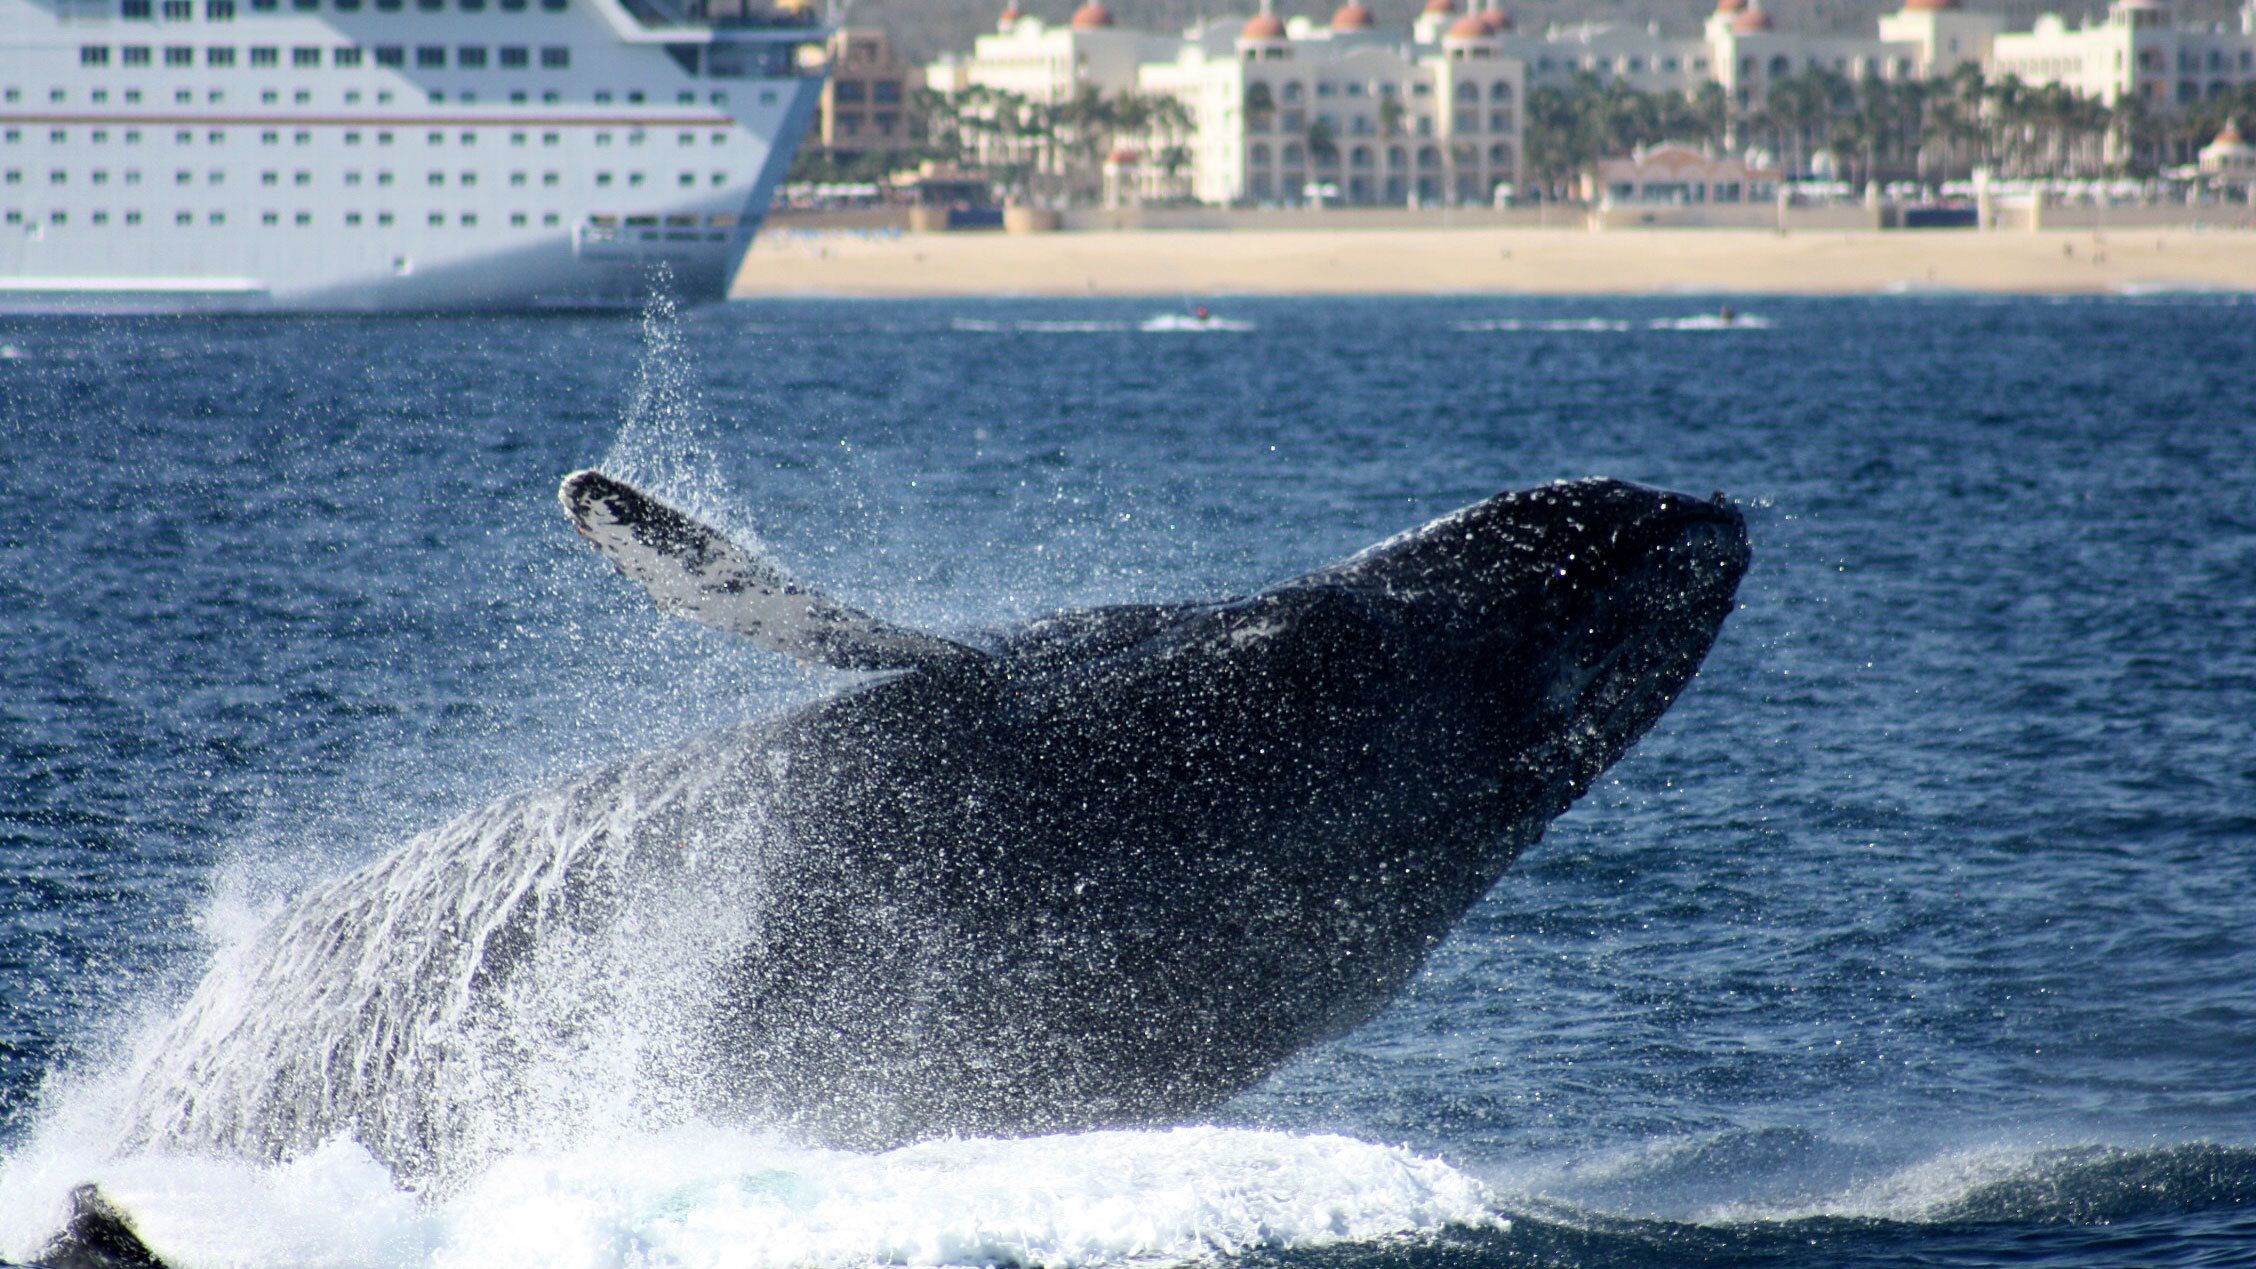 whale surfacing near the observation cruise in Los Cabos